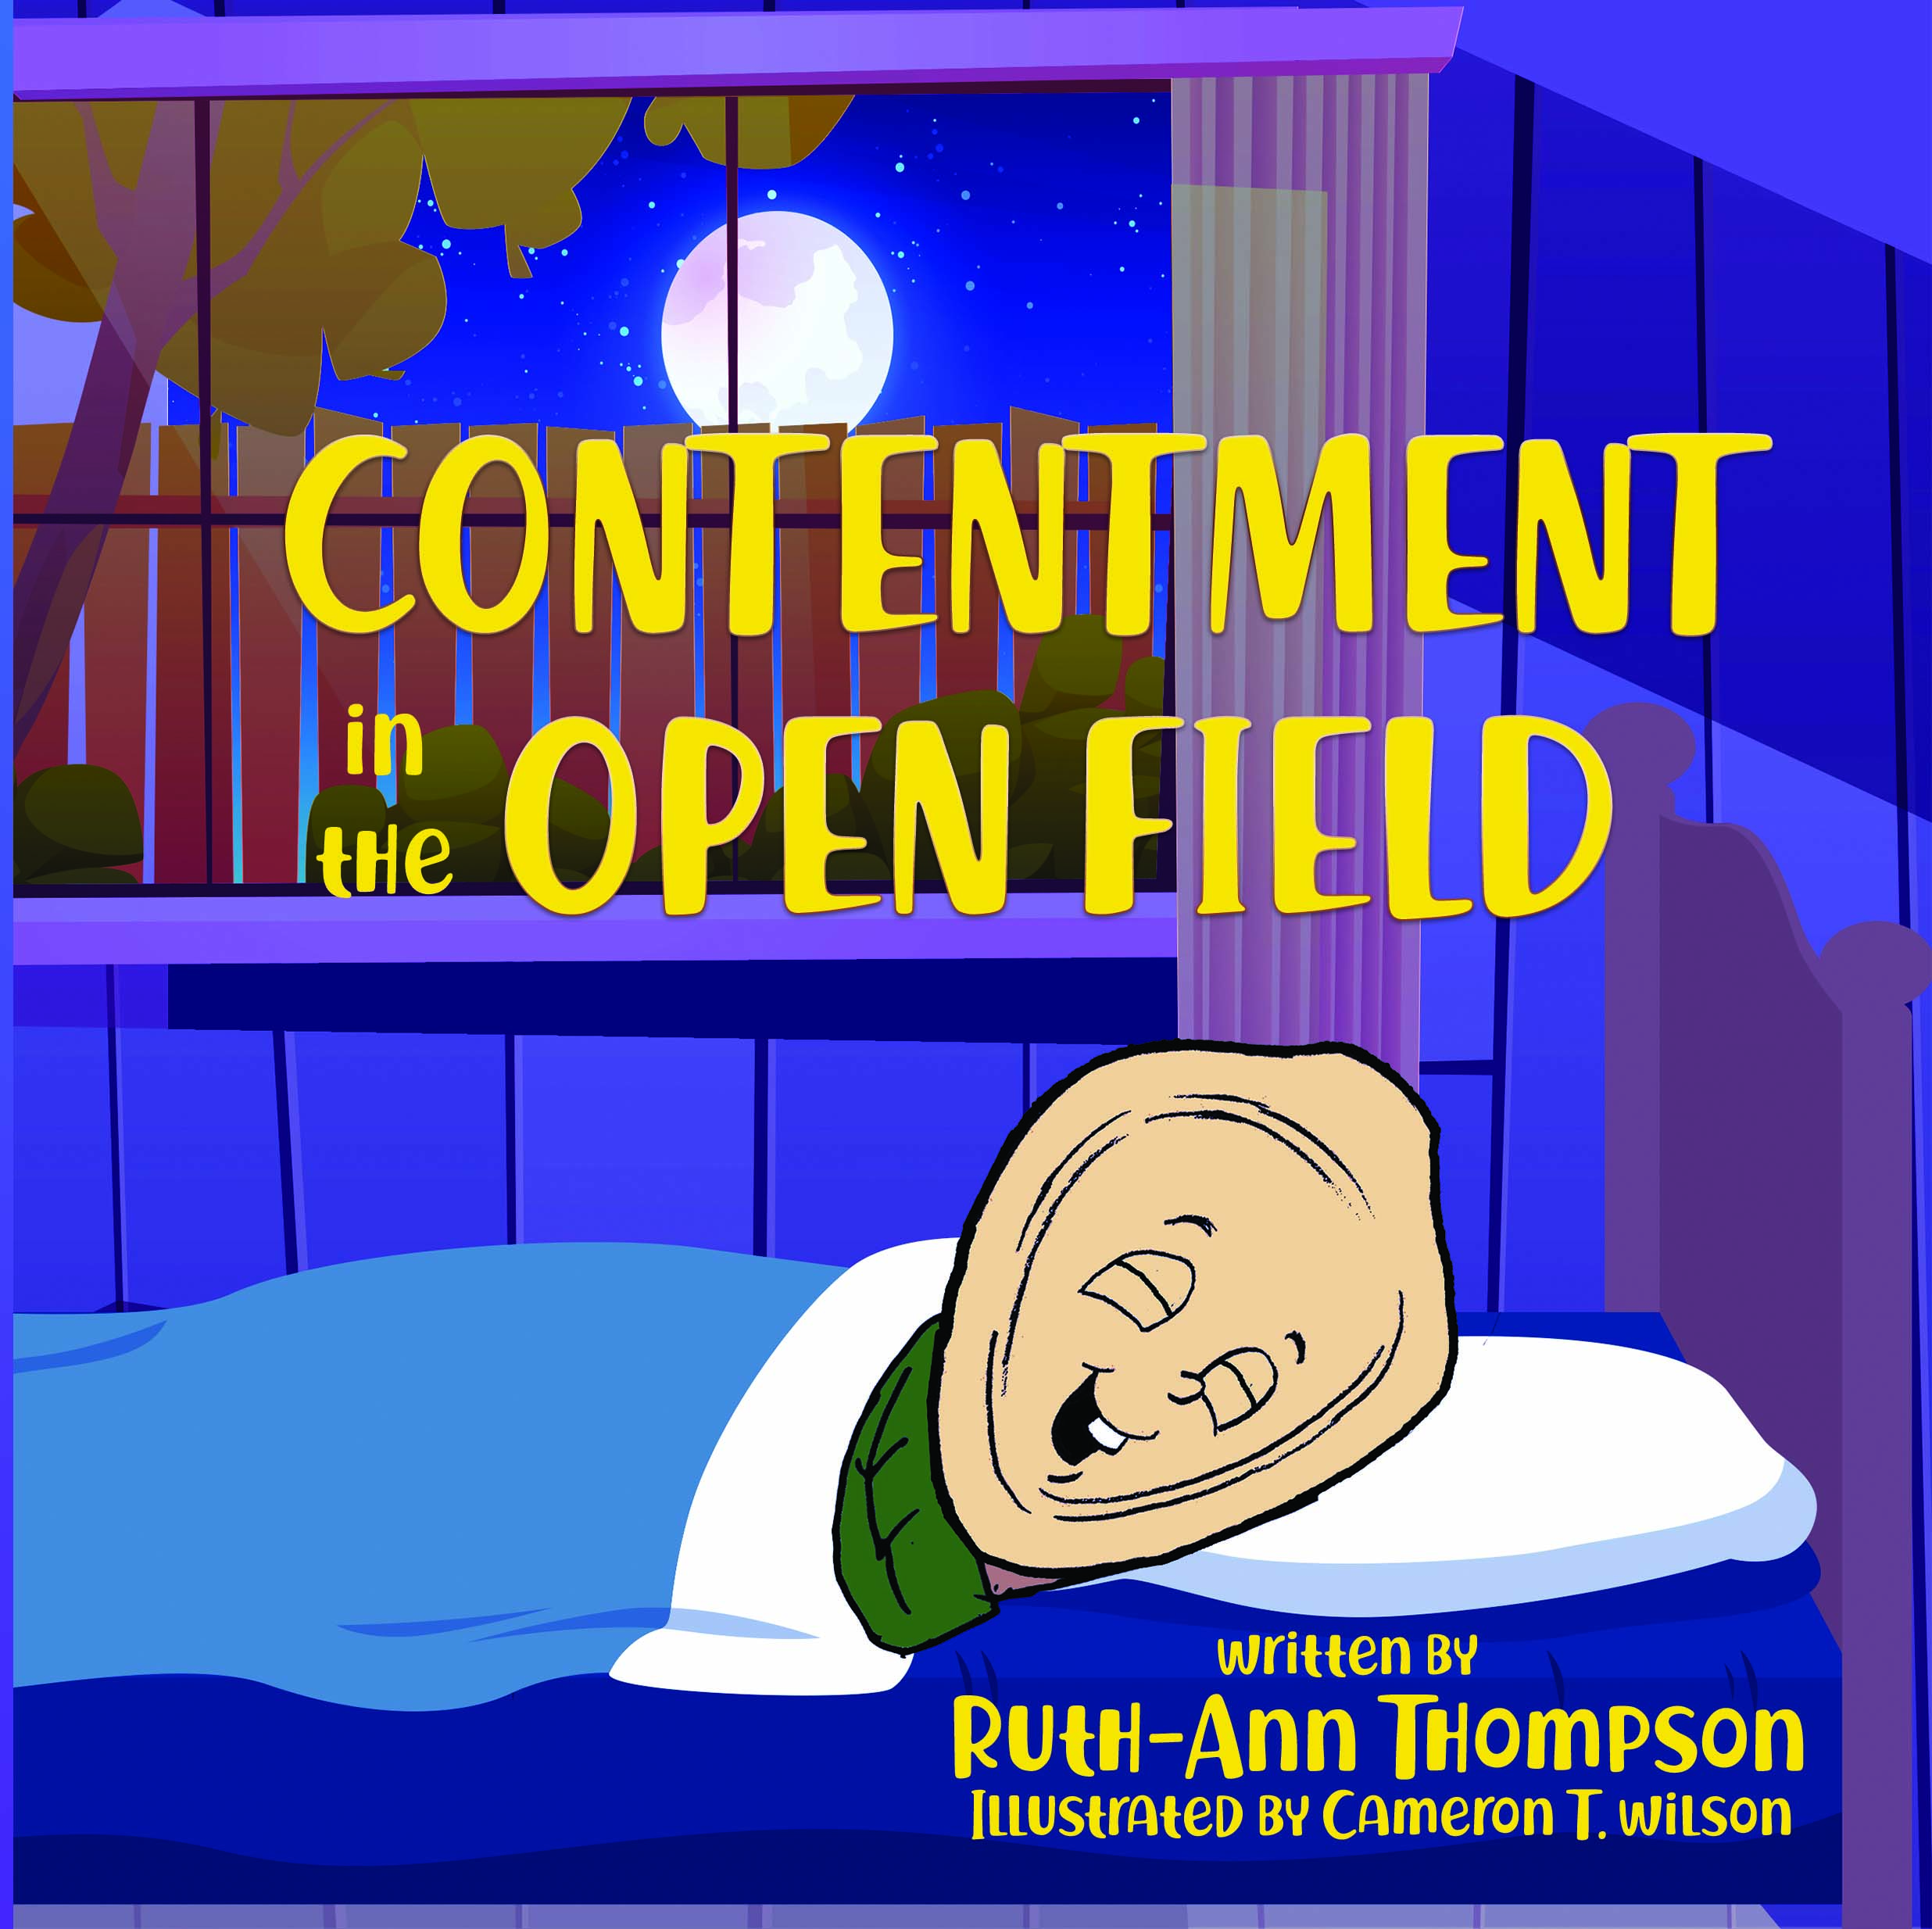 Contentment in the Open Field by Ruth-Ann Thompson